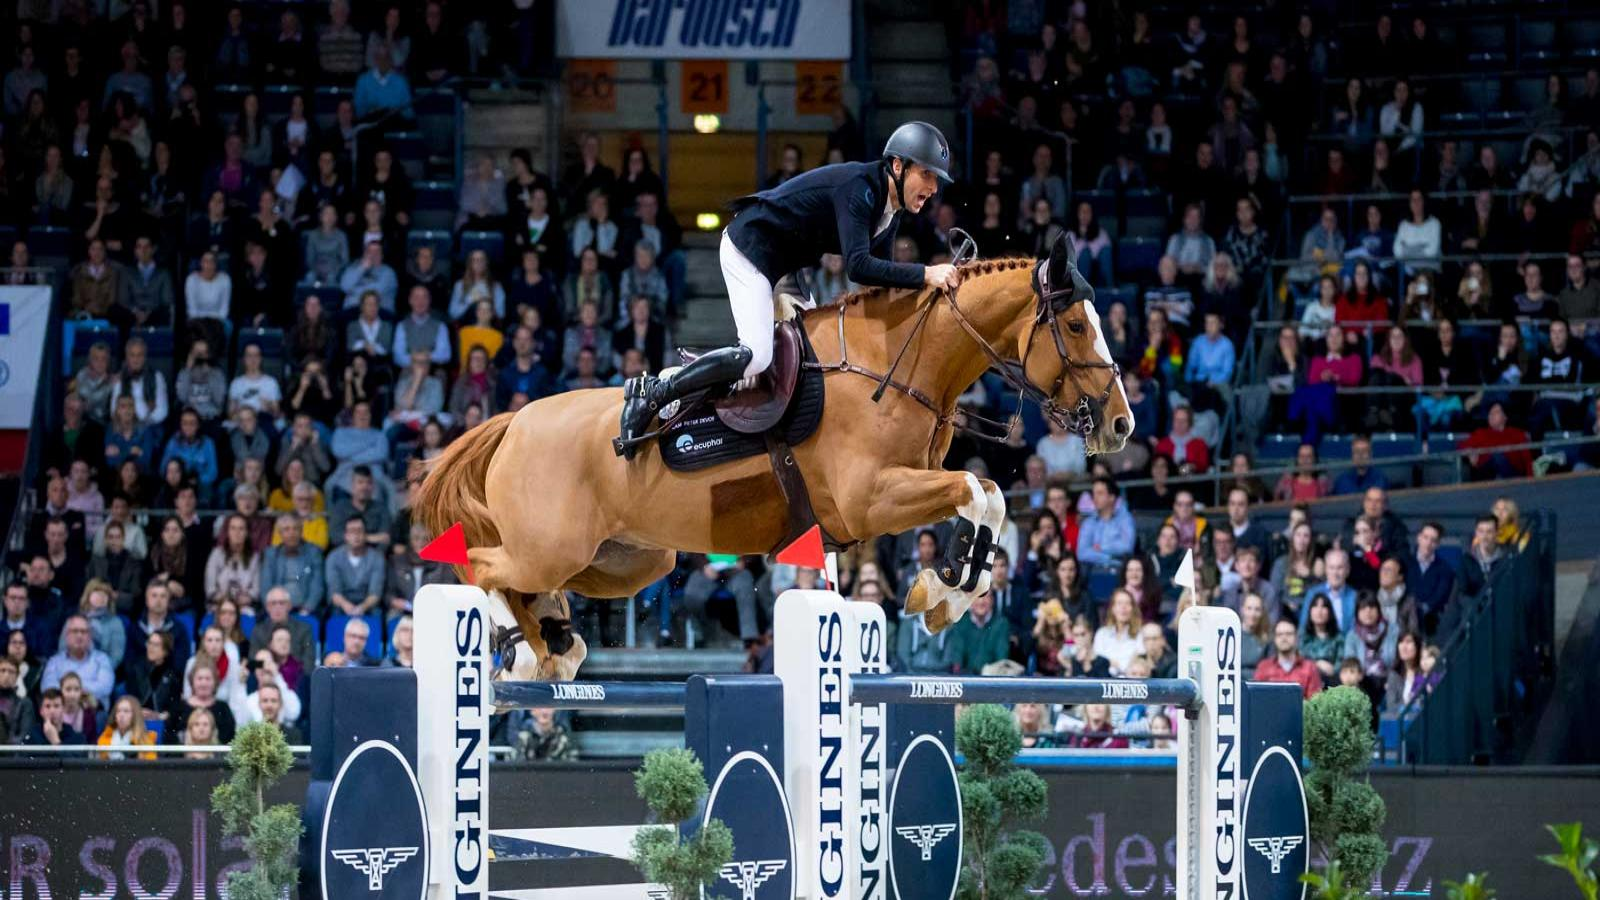 Longines FEI World Cup Western European League; Stuttgart German Master; Horse Jumping,pic2